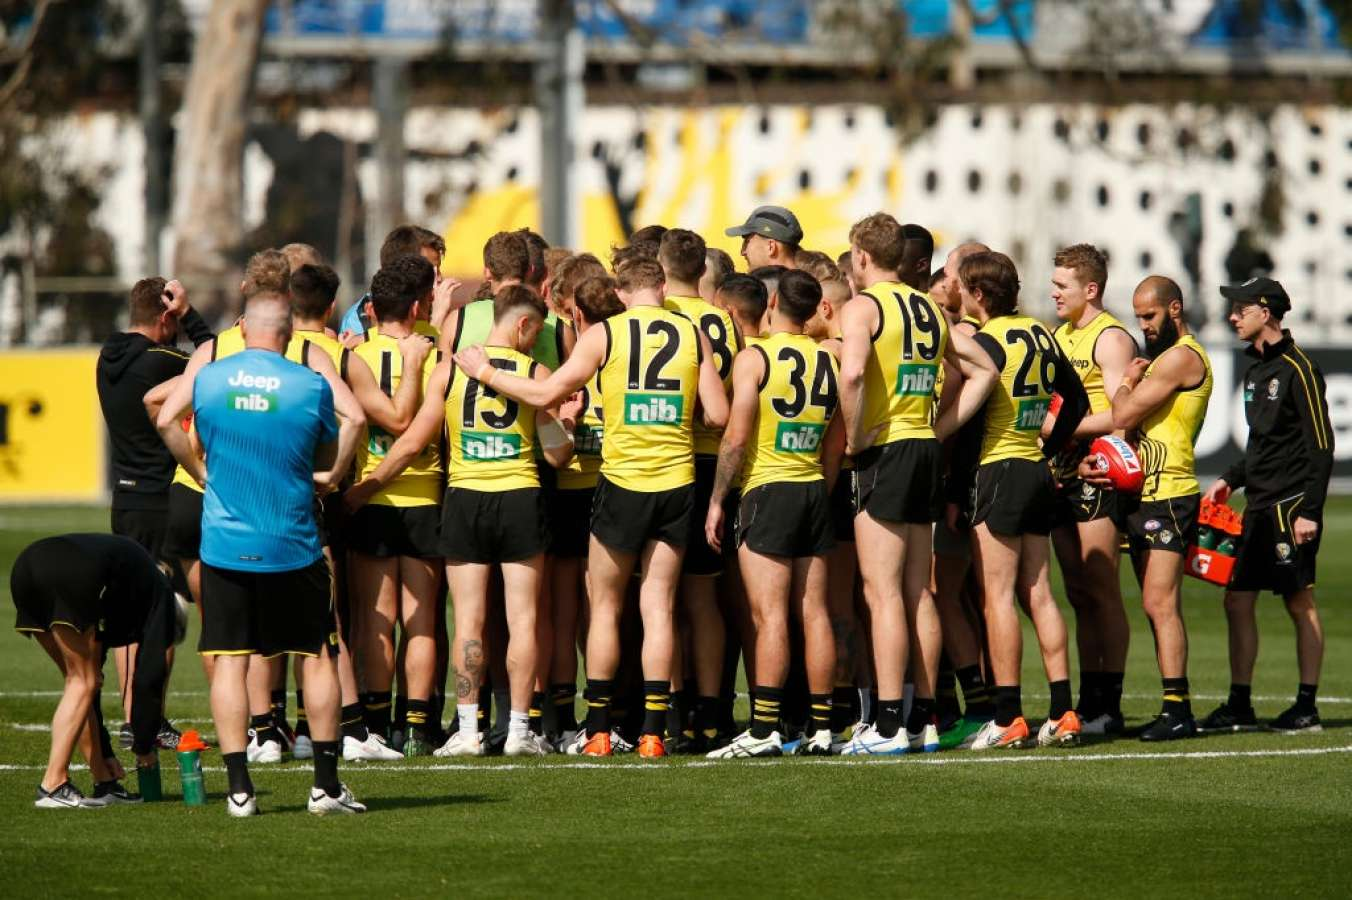 Liston trophy betting sites gruss betting assistant